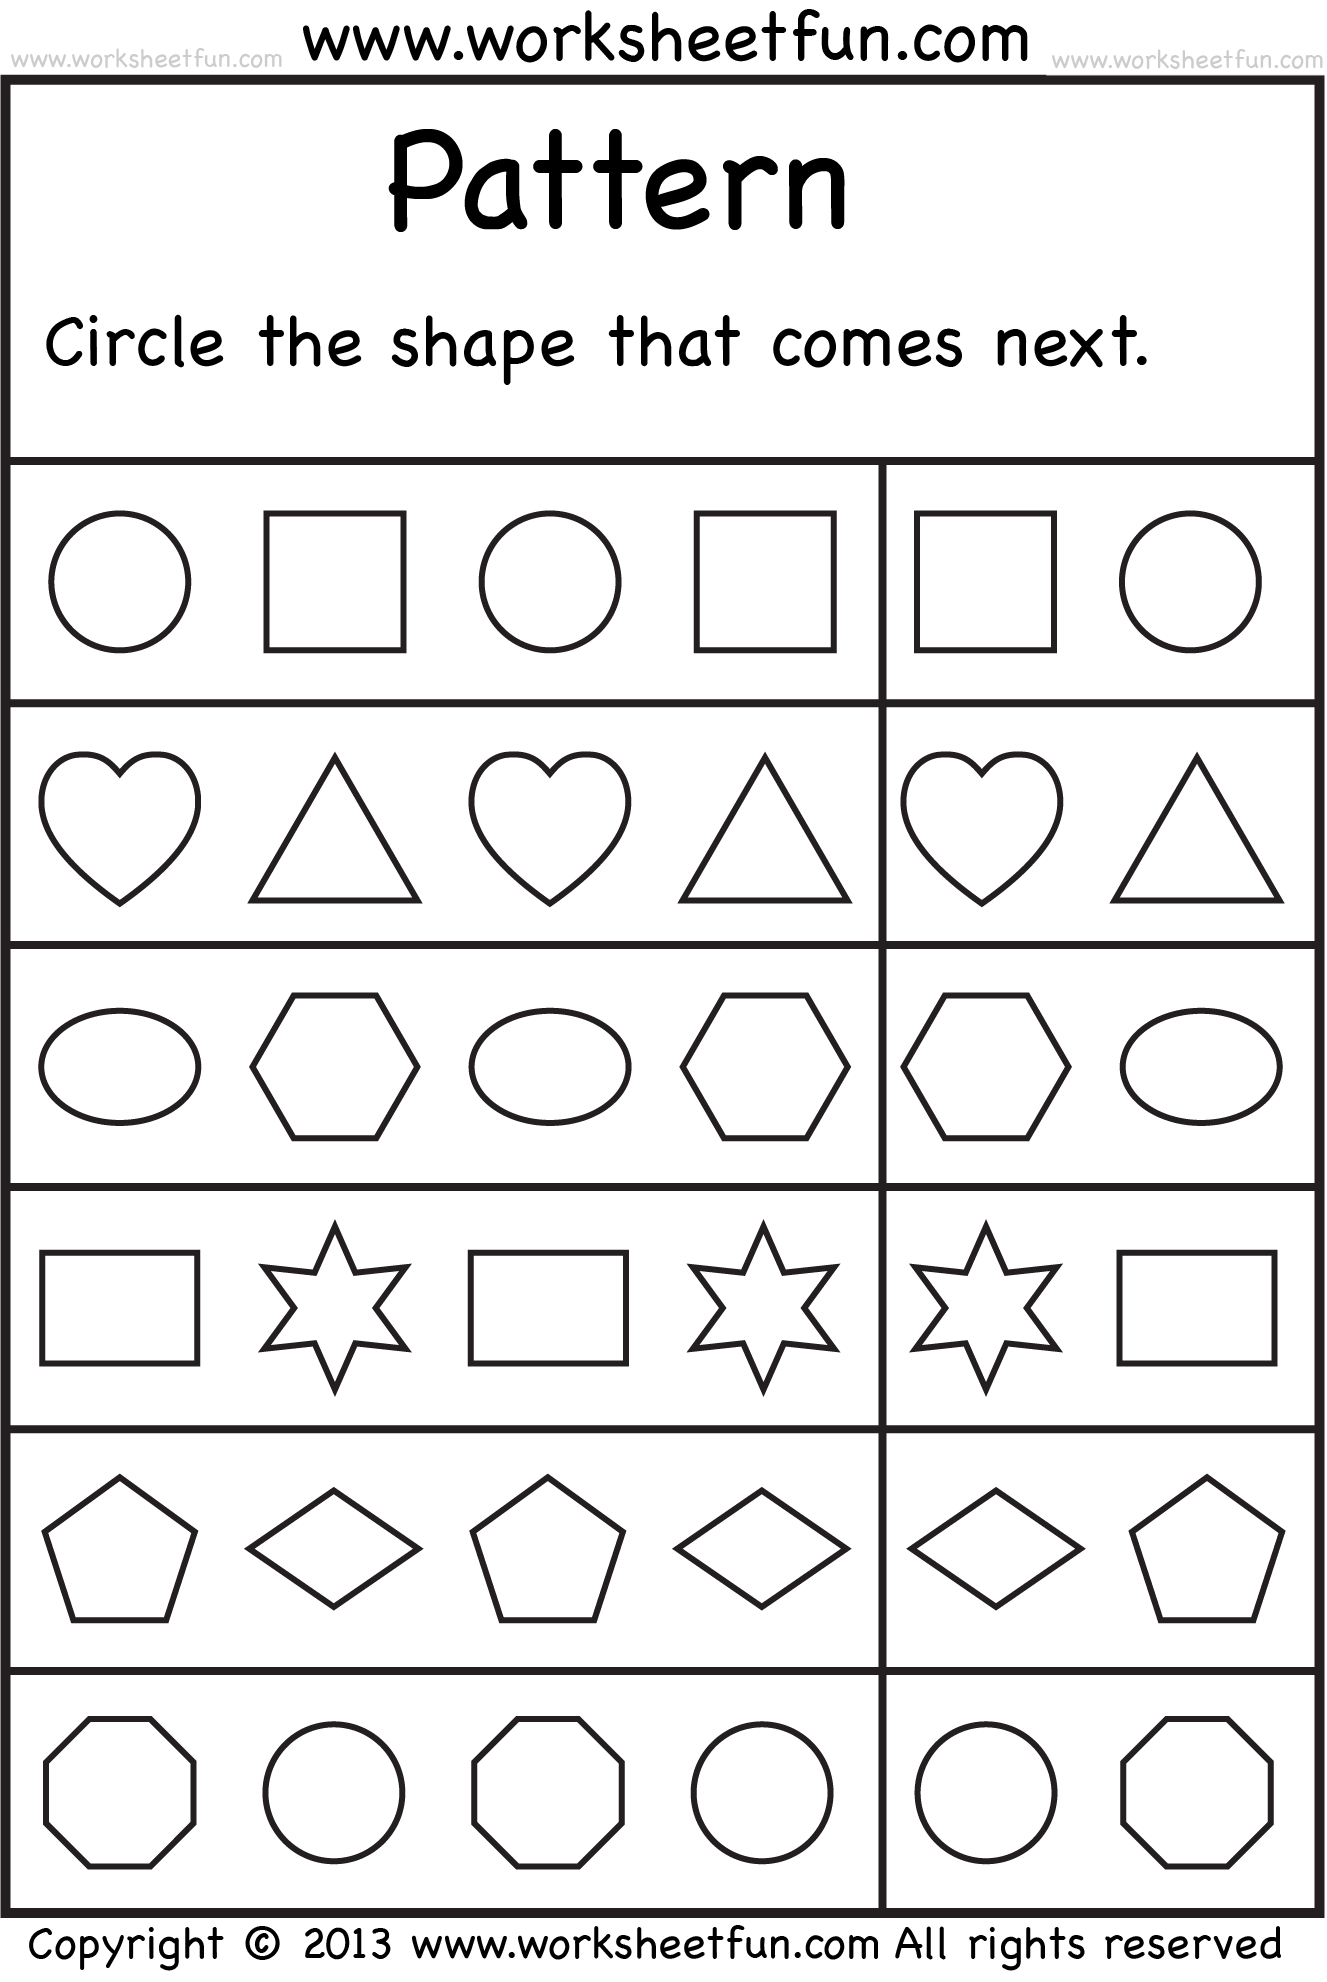 Proatmealus  Marvelous  Images About School Worksheets On Pinterest  Number Words  With Remarkable  Images About School Worksheets On Pinterest  Number Words Alphabet Worksheets And Free Printable Kindergarten Worksheets With Alluring Weight Conversion Worksheet Also Order Of Operations Worksheets With Integers In Addition Kindergarten Worksheets Cut And Paste And History Worksheets Th Grade As Well As Worksheets Angles Additionally Count And Mass Nouns Worksheets From Pinterestcom With Proatmealus  Remarkable  Images About School Worksheets On Pinterest  Number Words  With Alluring  Images About School Worksheets On Pinterest  Number Words Alphabet Worksheets And Free Printable Kindergarten Worksheets And Marvelous Weight Conversion Worksheet Also Order Of Operations Worksheets With Integers In Addition Kindergarten Worksheets Cut And Paste From Pinterestcom